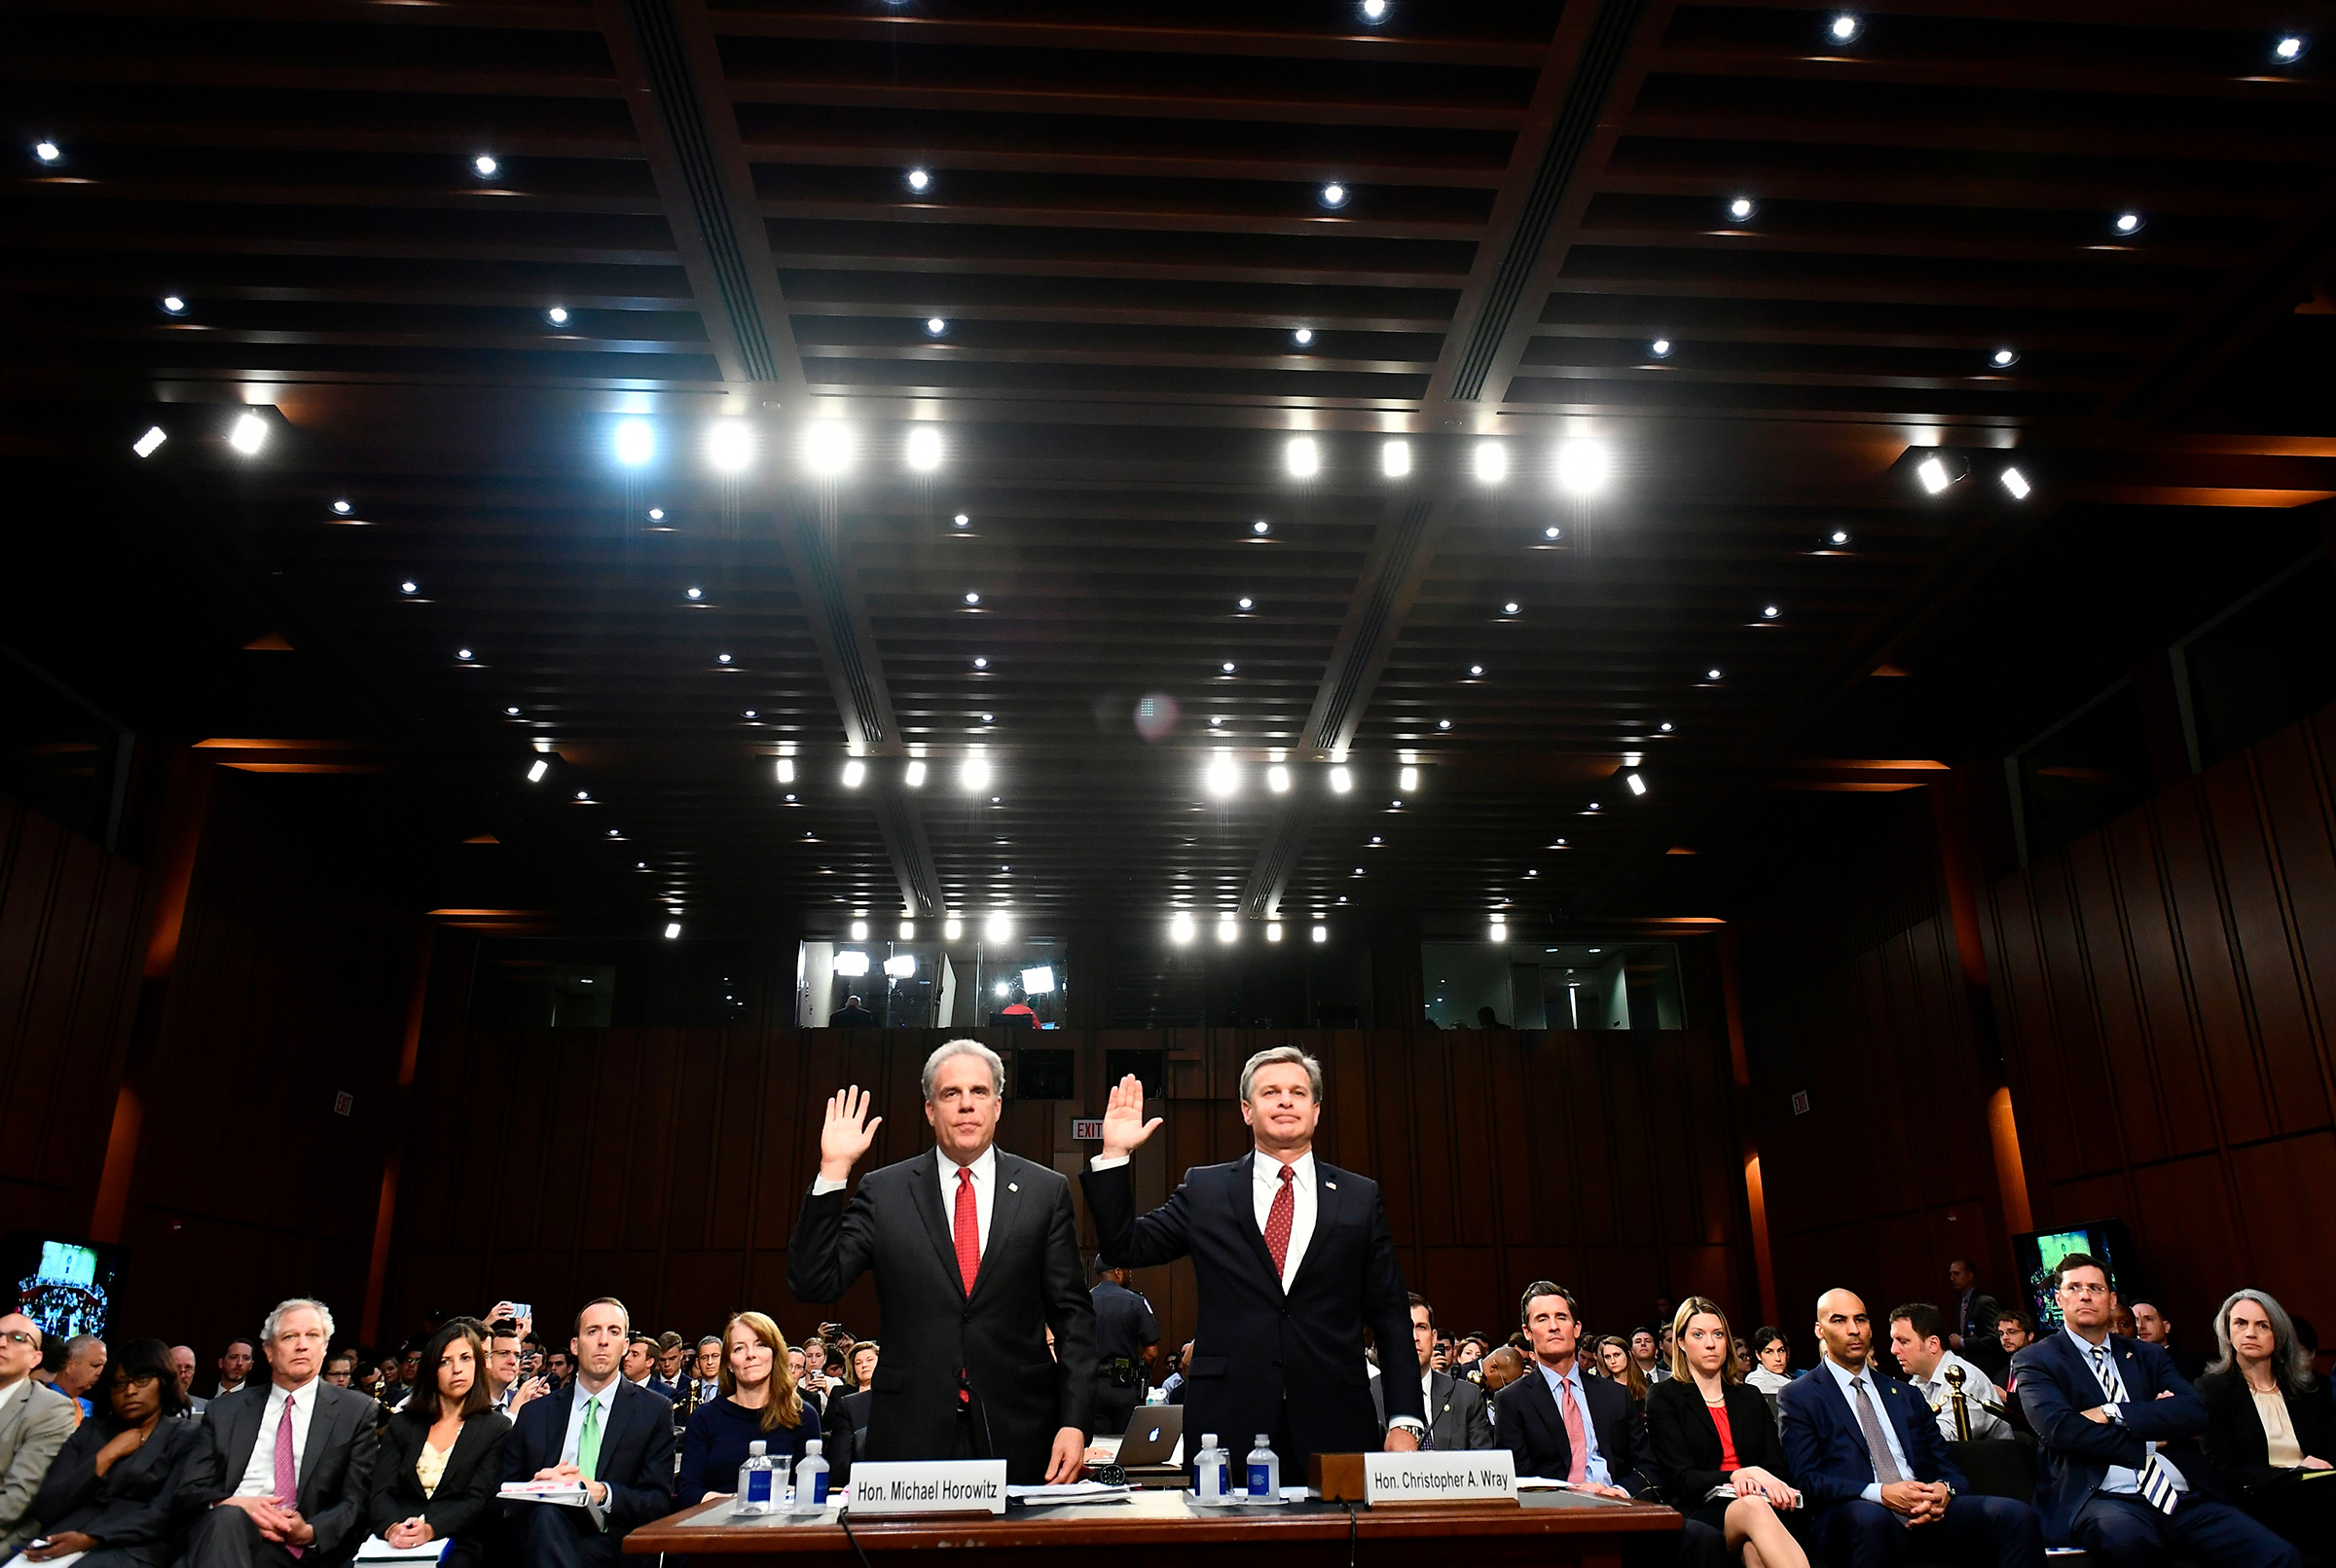 Justice Department Inspector General Michael Horowitz, left, and FBI Director Christopher Wray take an oath before testifying to the Senate Judiciary Committee in Washington, DC on June 18, 2018.